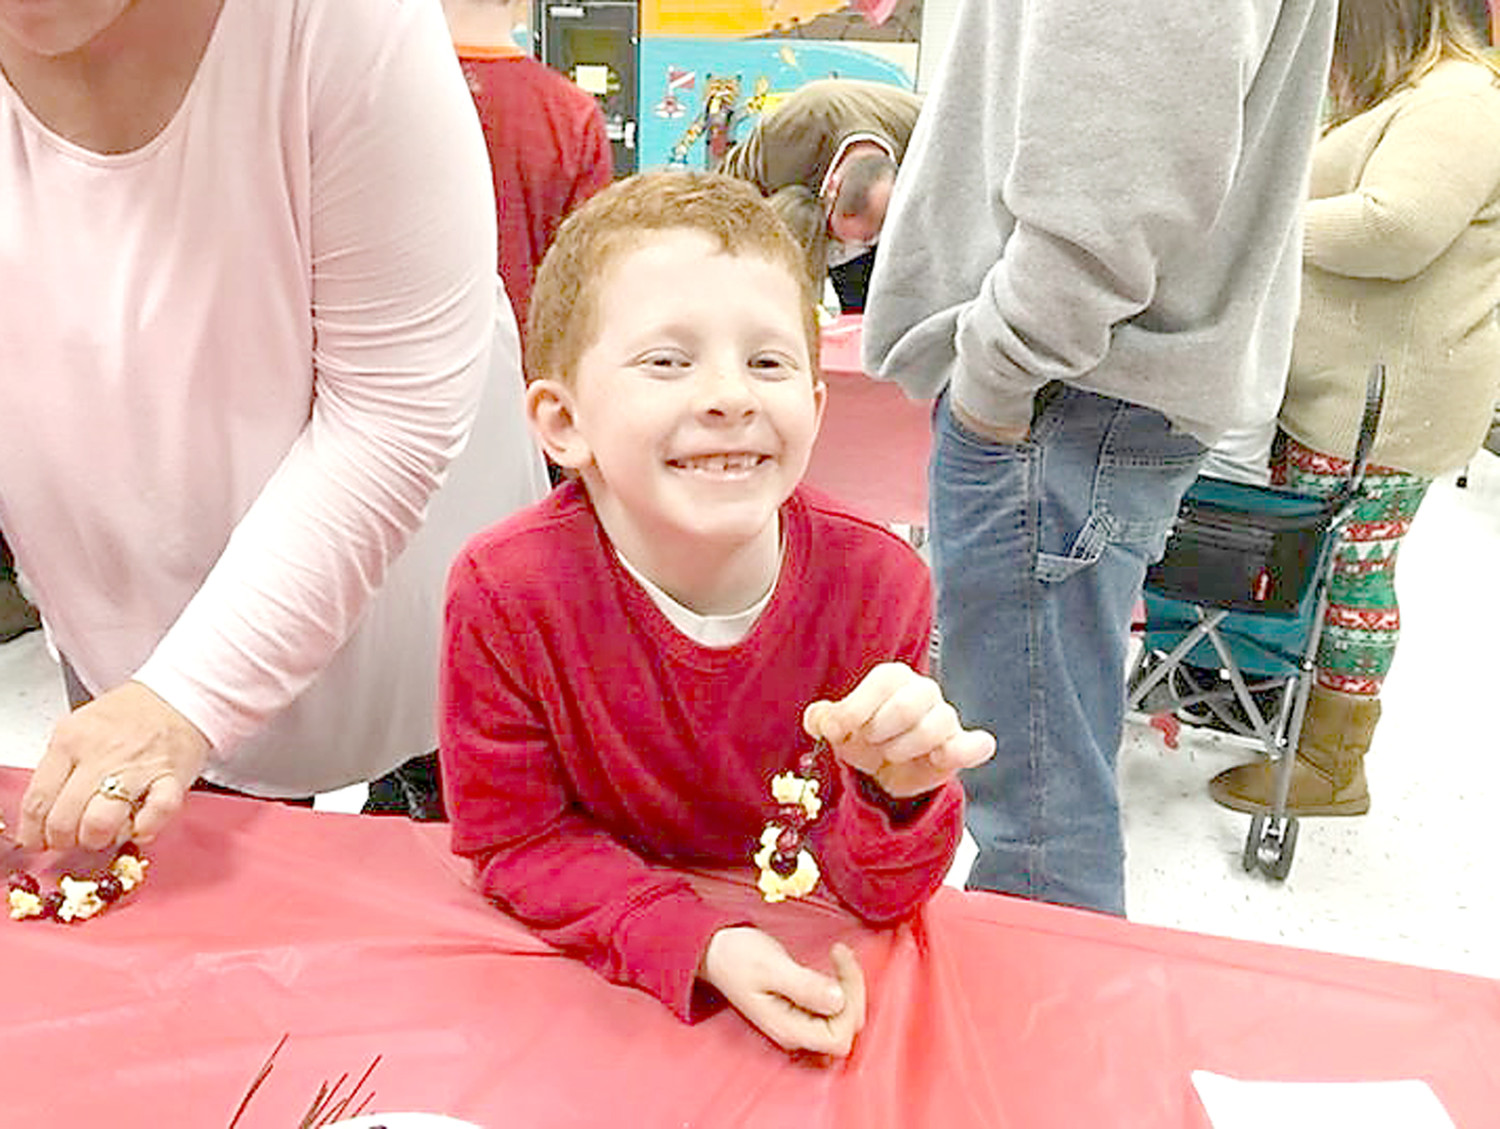 BRAYDEN SMITH proudly displays the ornament he made using popcorn and cranberries, during Hopewell Elementary School's Country Christmas.